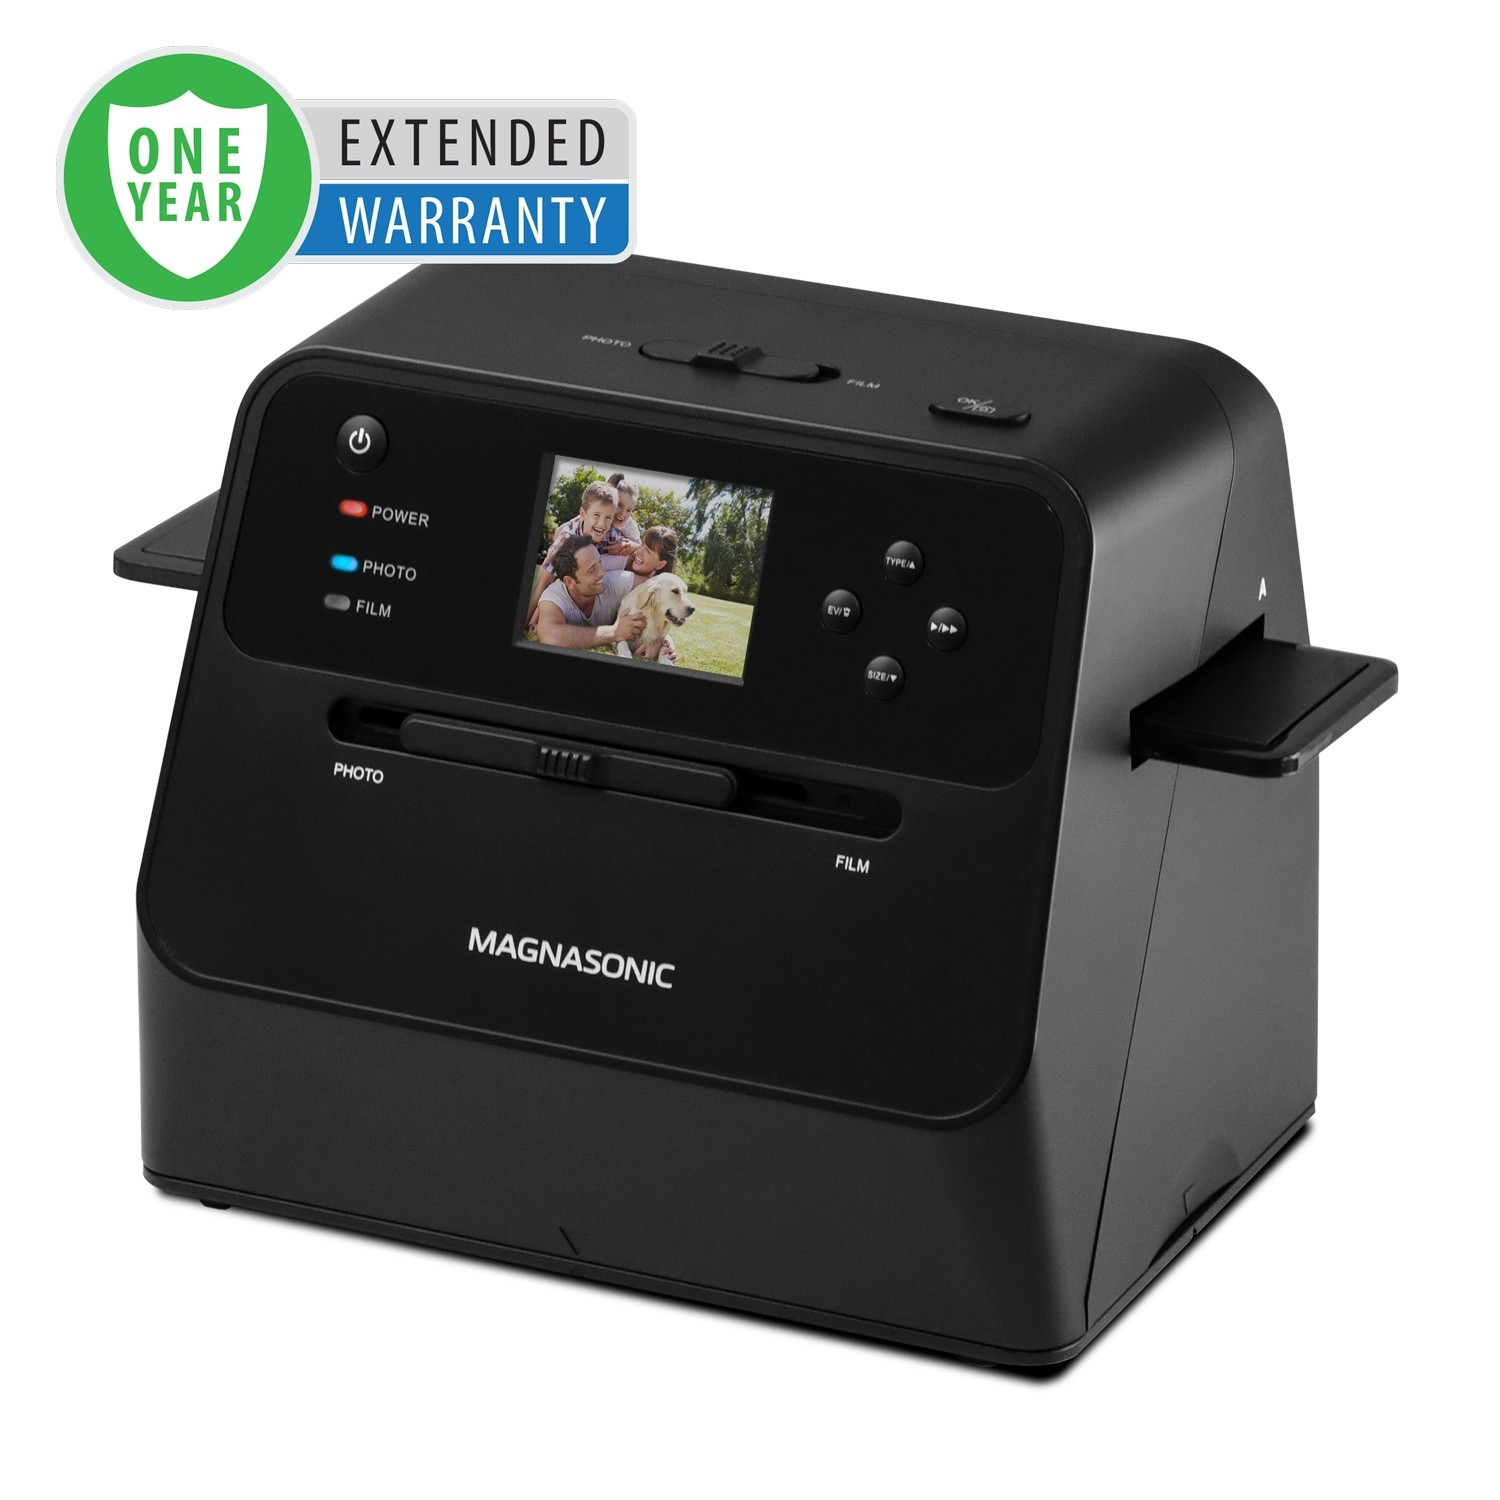 1 Year Warranty for the All-In-One 14MP Film & Photo Scanner